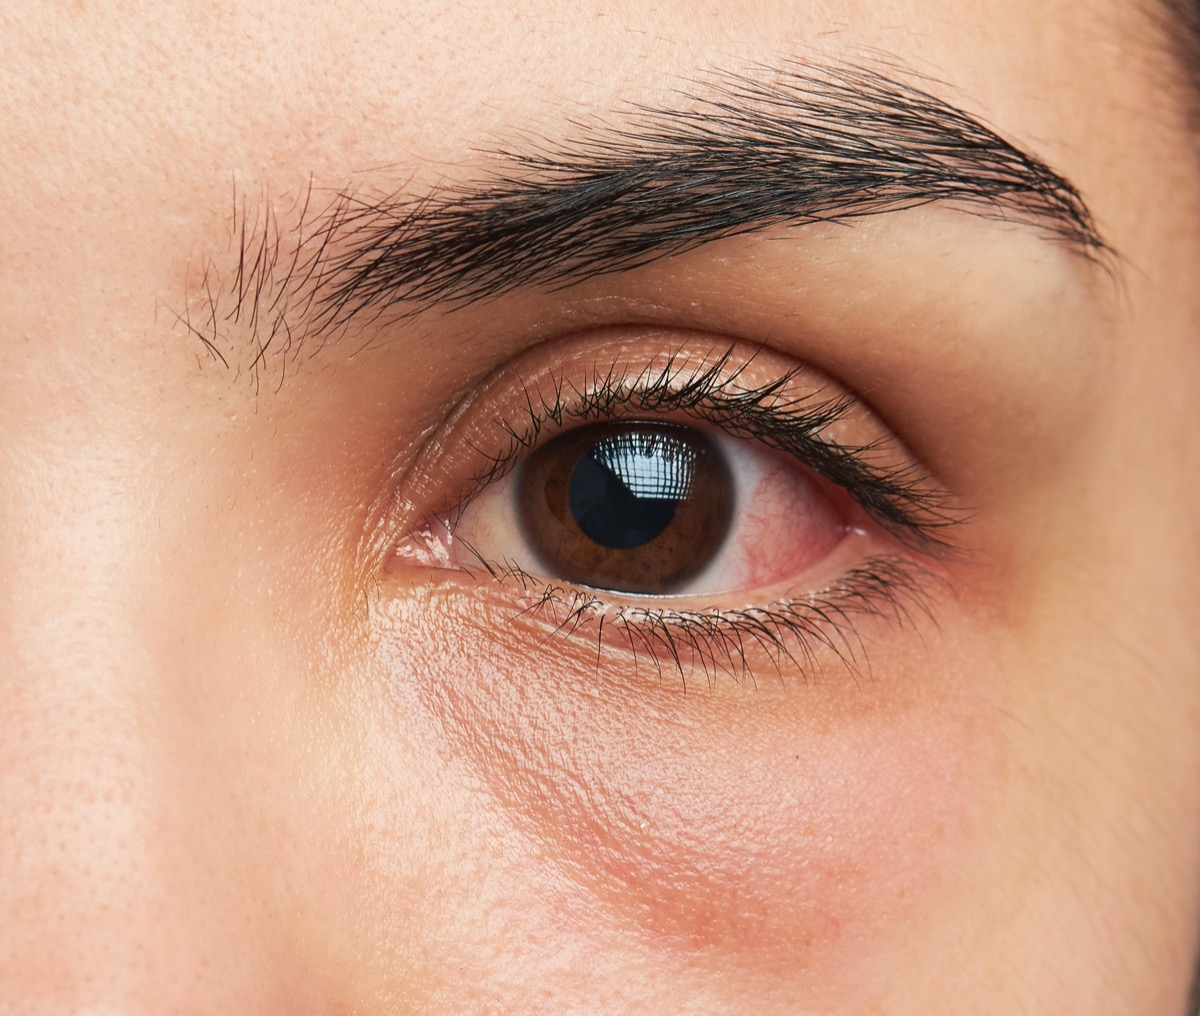 A woman's pink eye with infection.